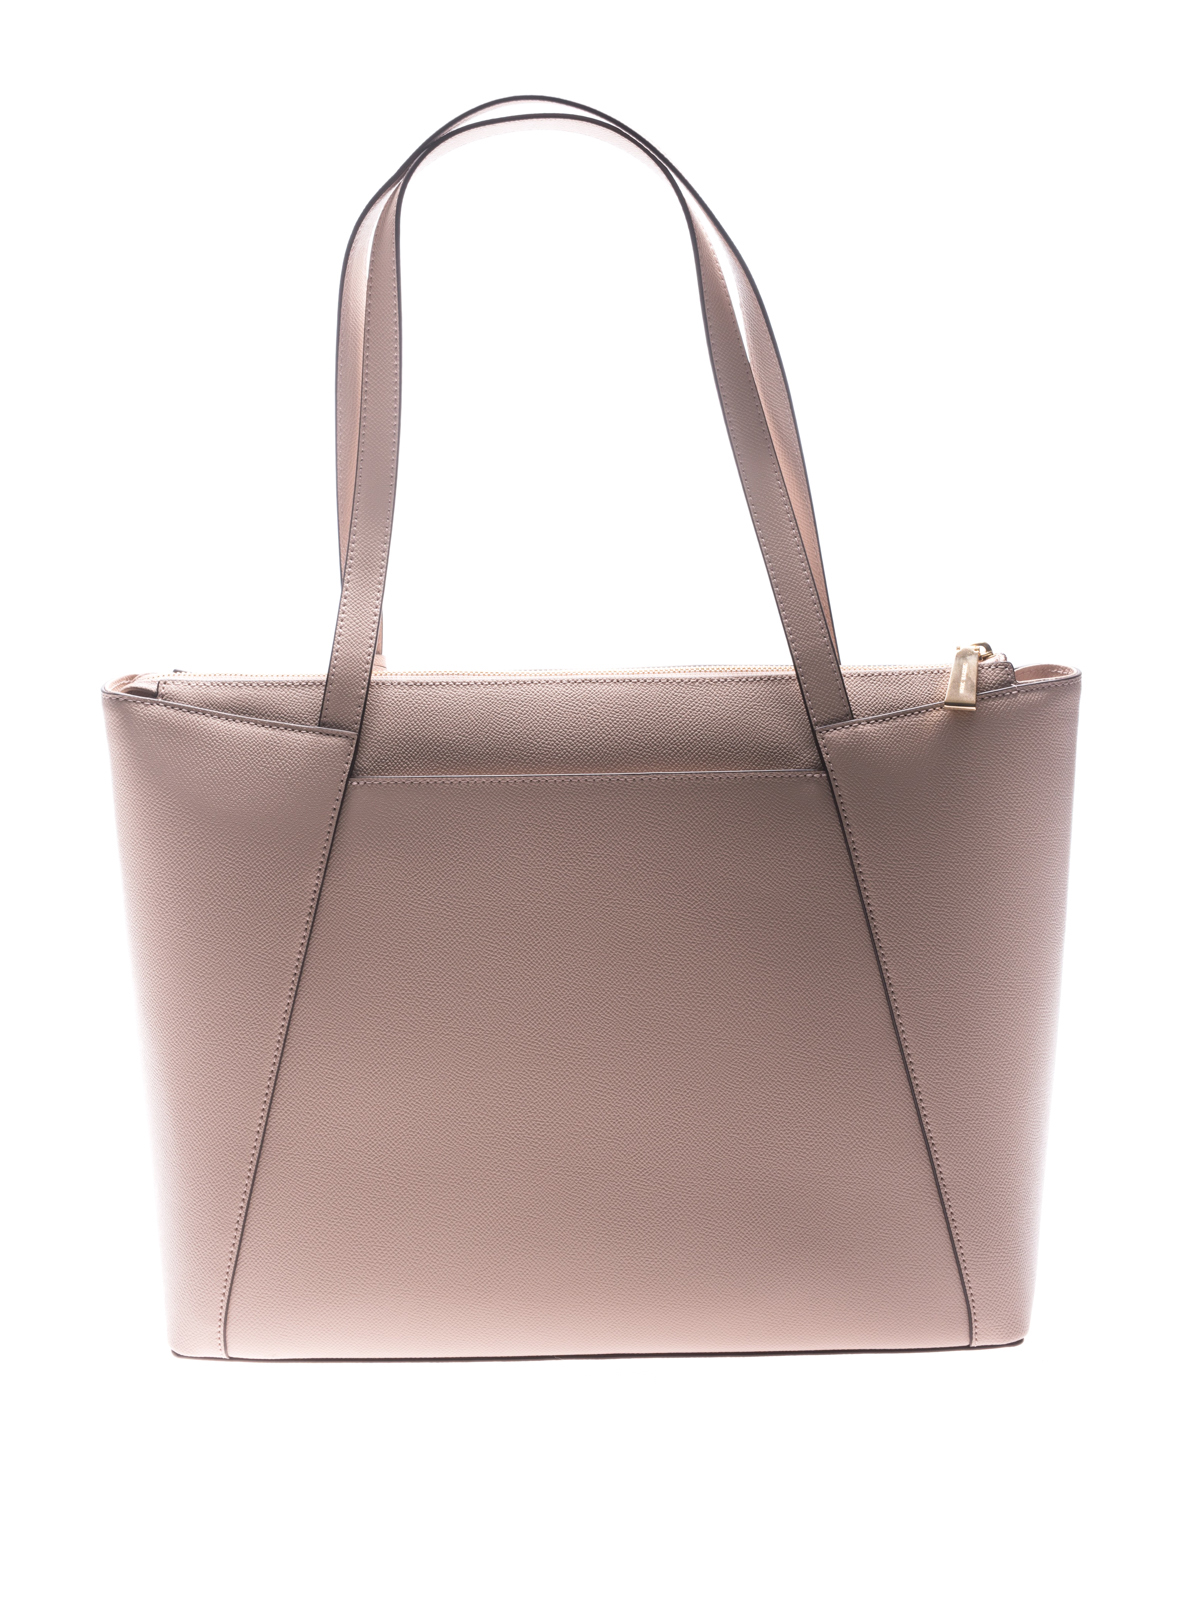 9cfdd3c788f7 Michael Kors - Maddie leather shopping bag - totes bags - 30S8GN2T9L ...